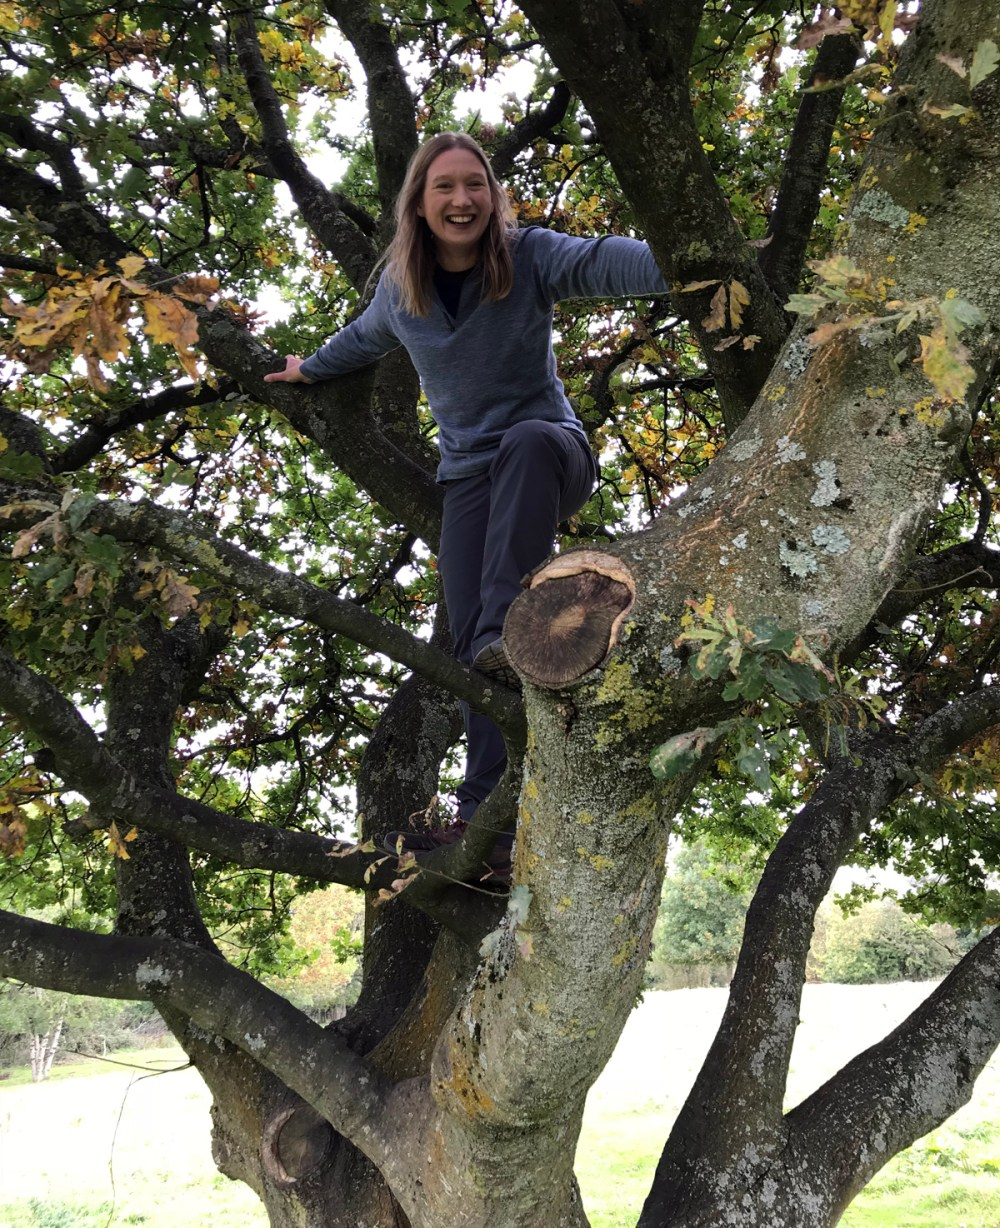 Splodz Blogz | GetOutside Activity Challenge - Climbing Trees